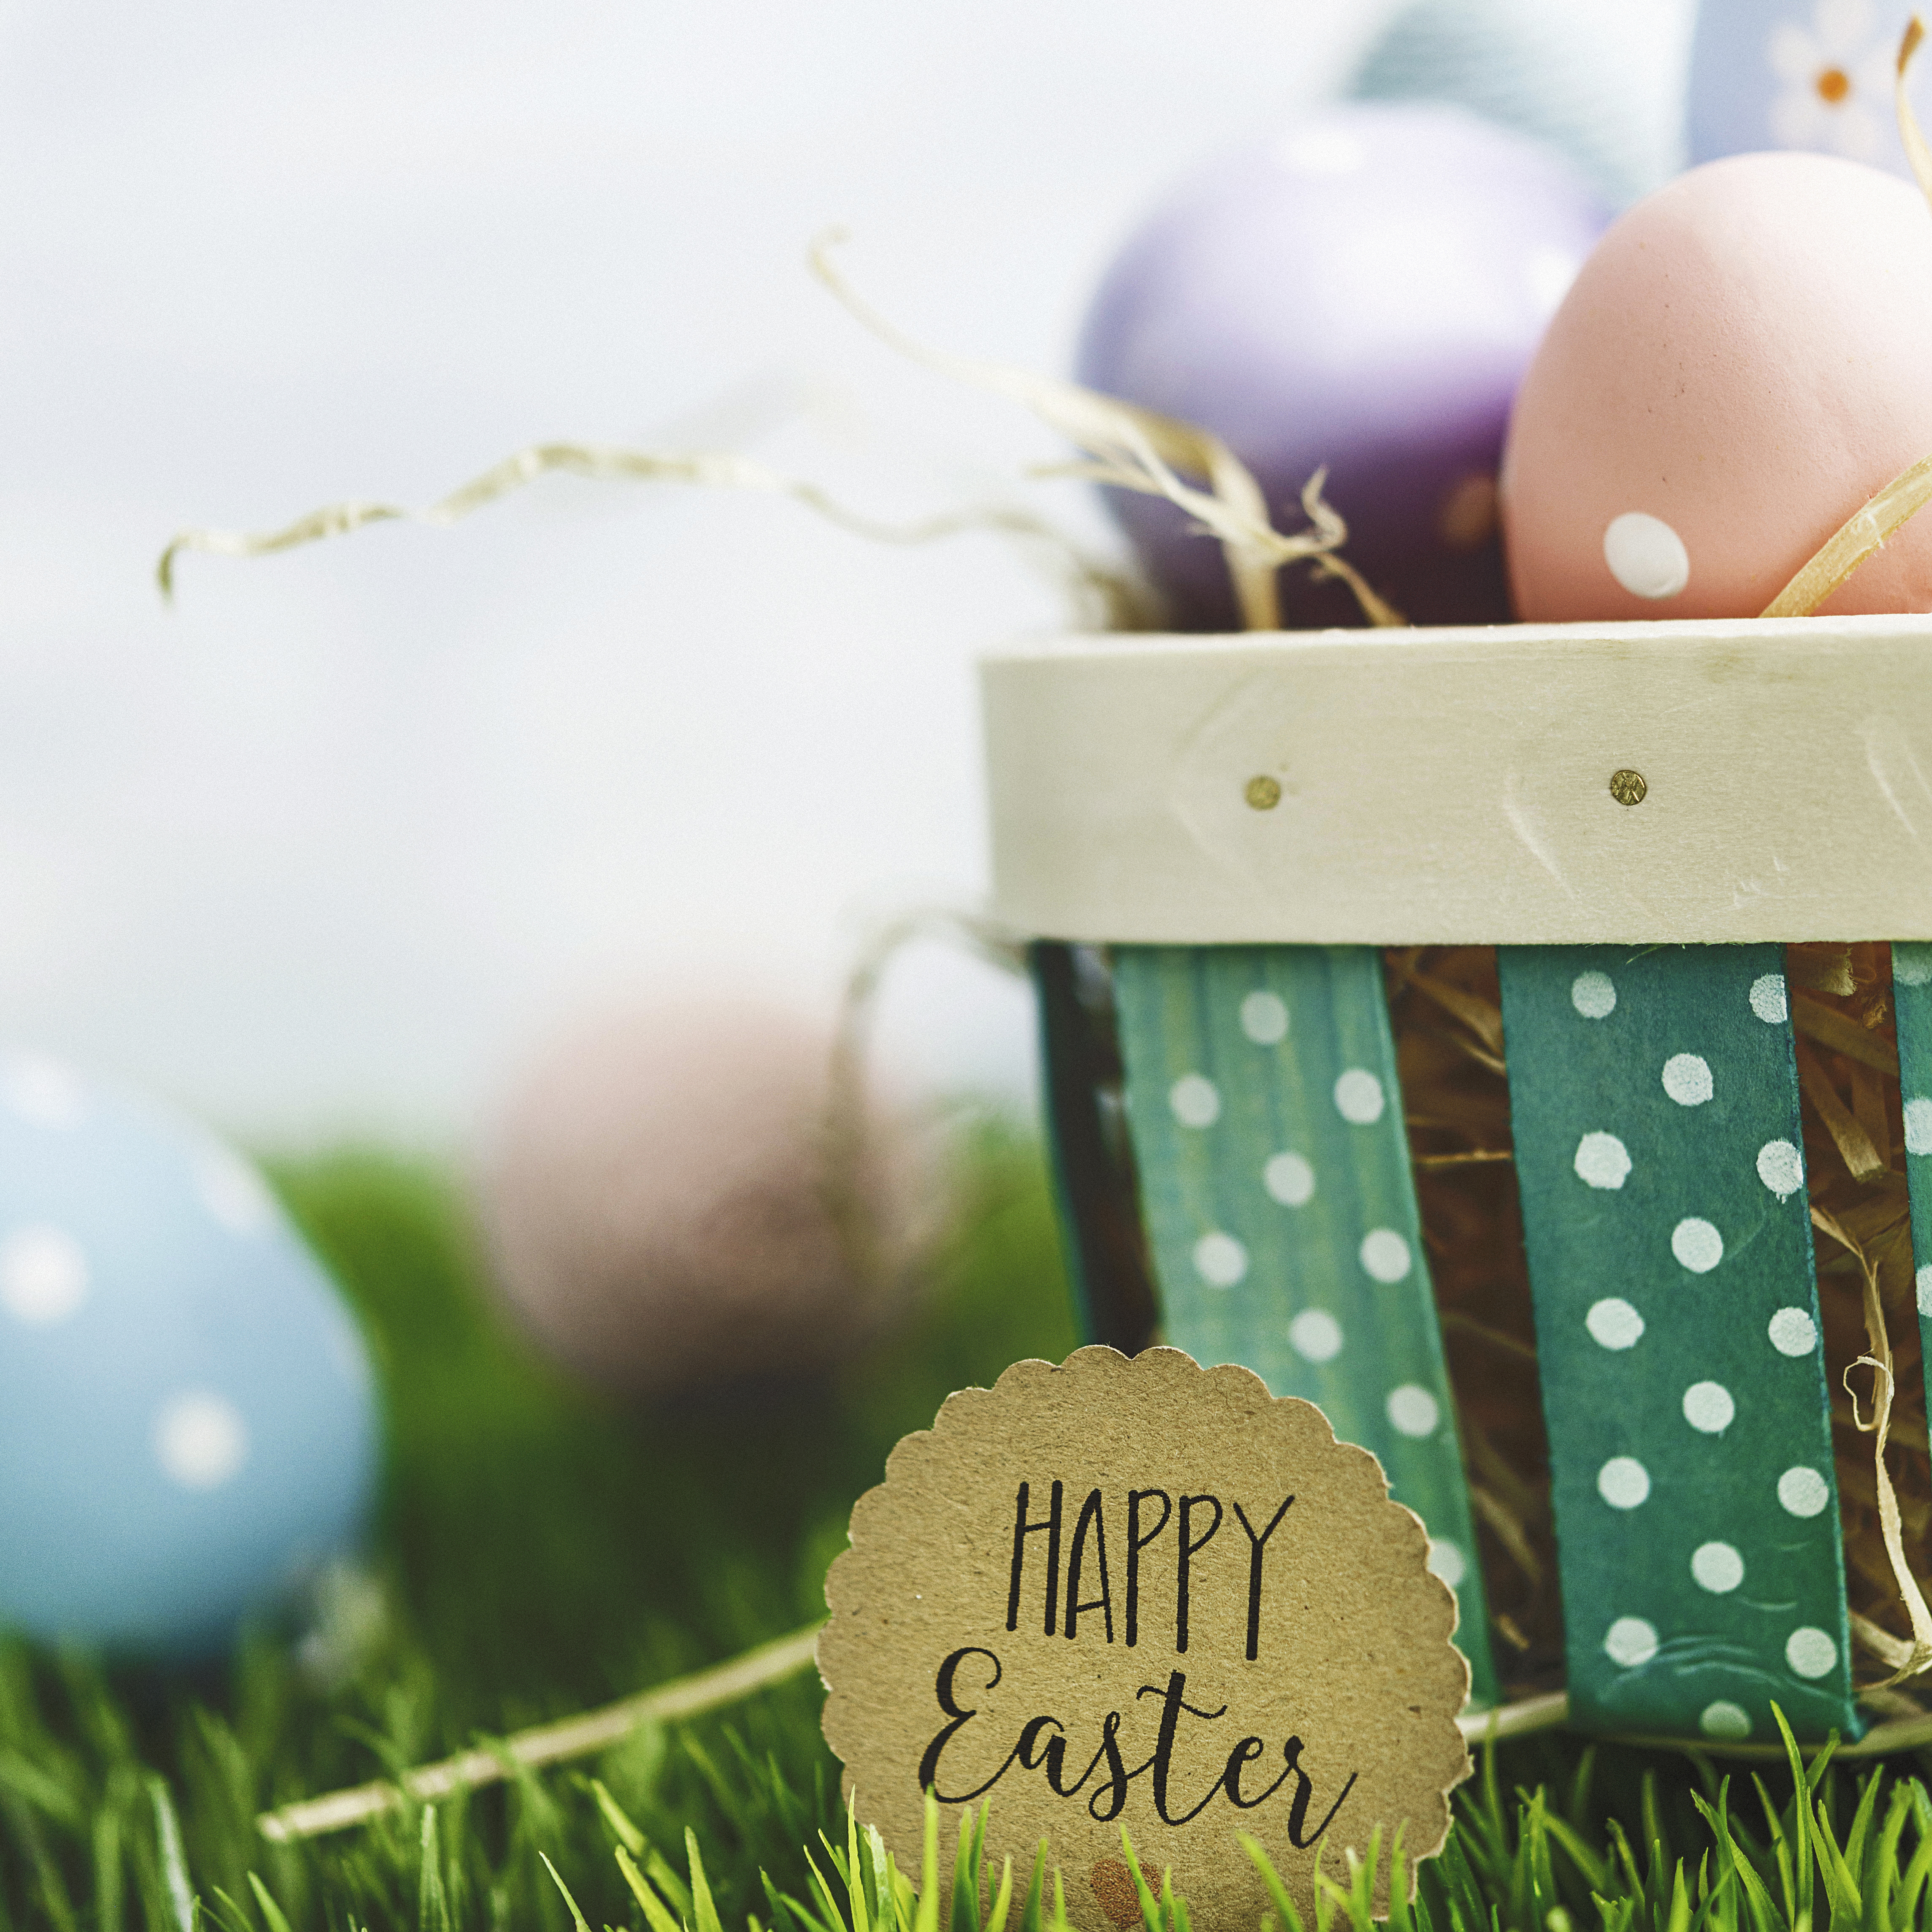 6 Things to Put in a Grown-Up Easter Basket